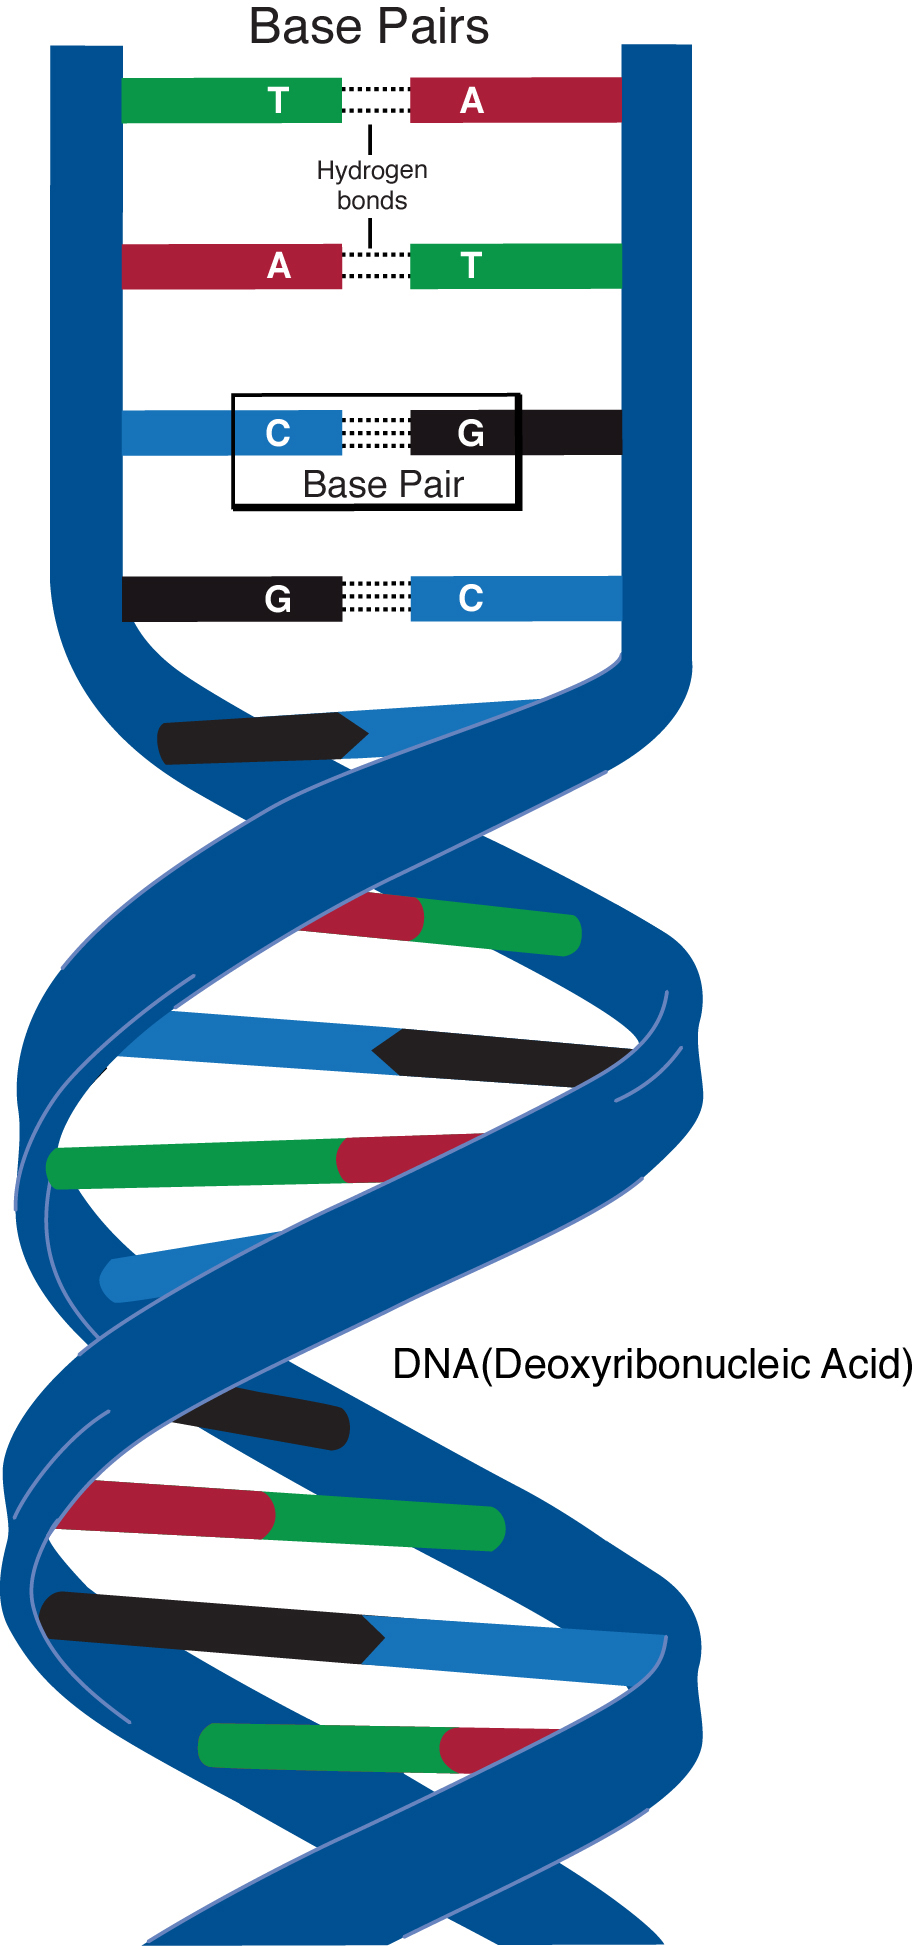 """A base pair is two chemical bases bonded to one another forming a """"rung of the DNA ladder."""" Photo: Darryl Leja, NHGRI public domain"""